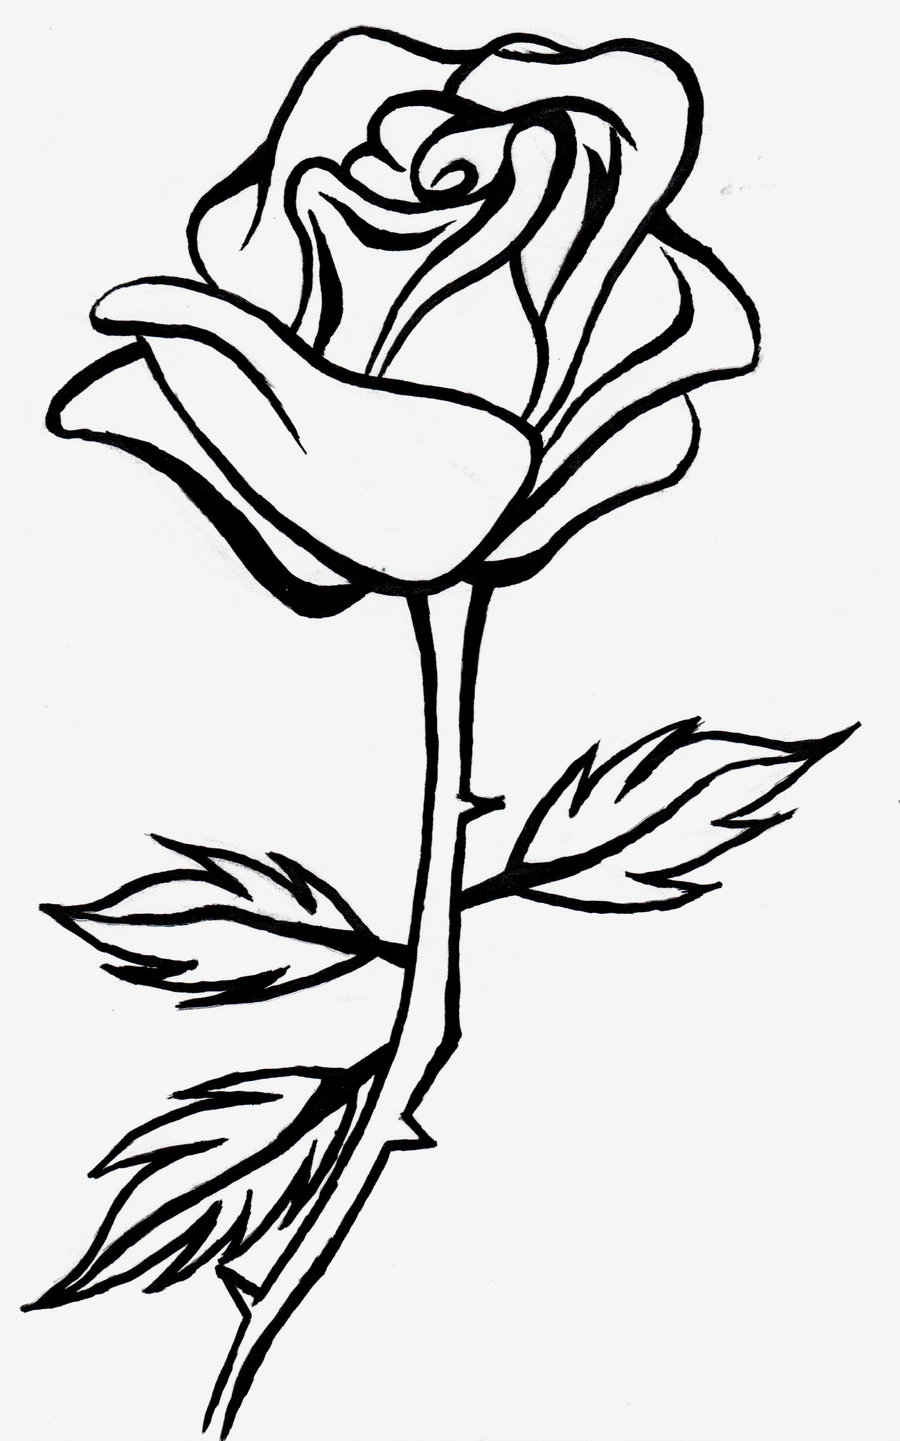 Line Drawing Of Rose Plant : Line drawing rose cliparts